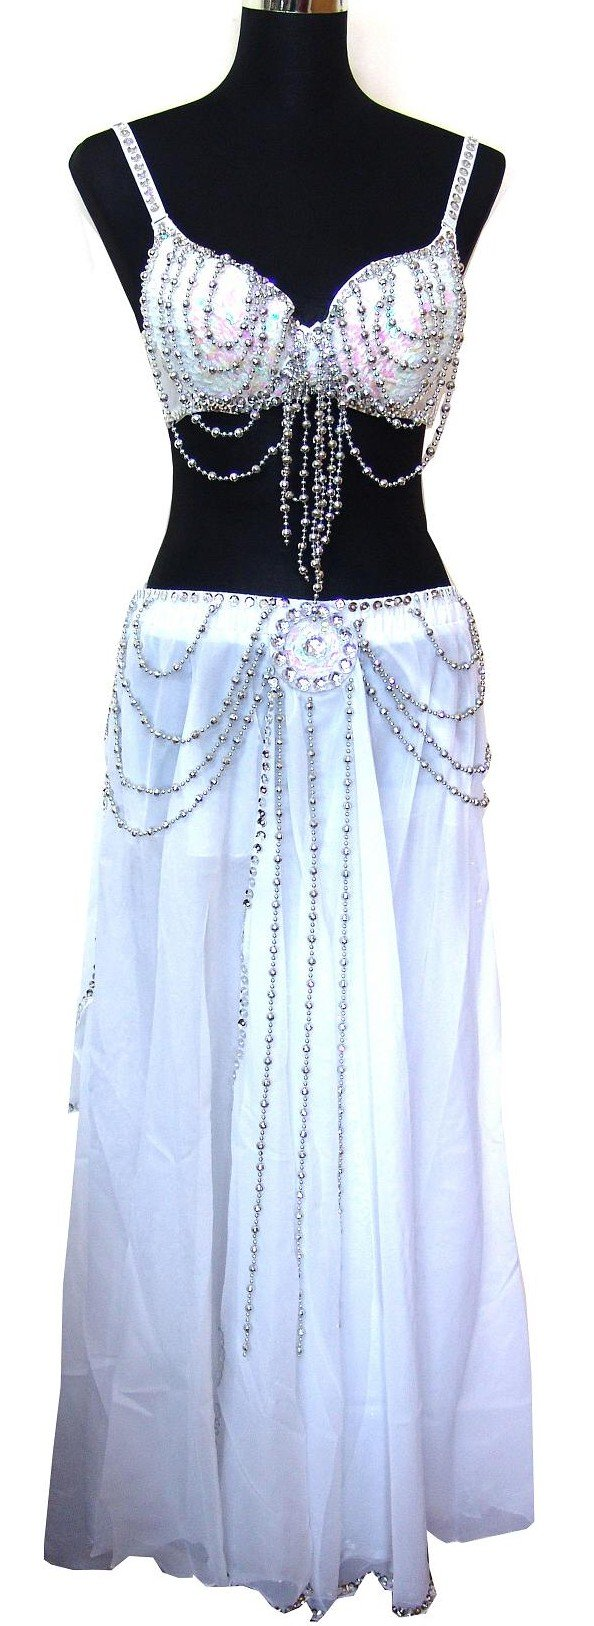 Professional Belly Dance Sequin Dangling Beaded Bra Top & Skirt Set --White 34A/B by Belly Dance Costume